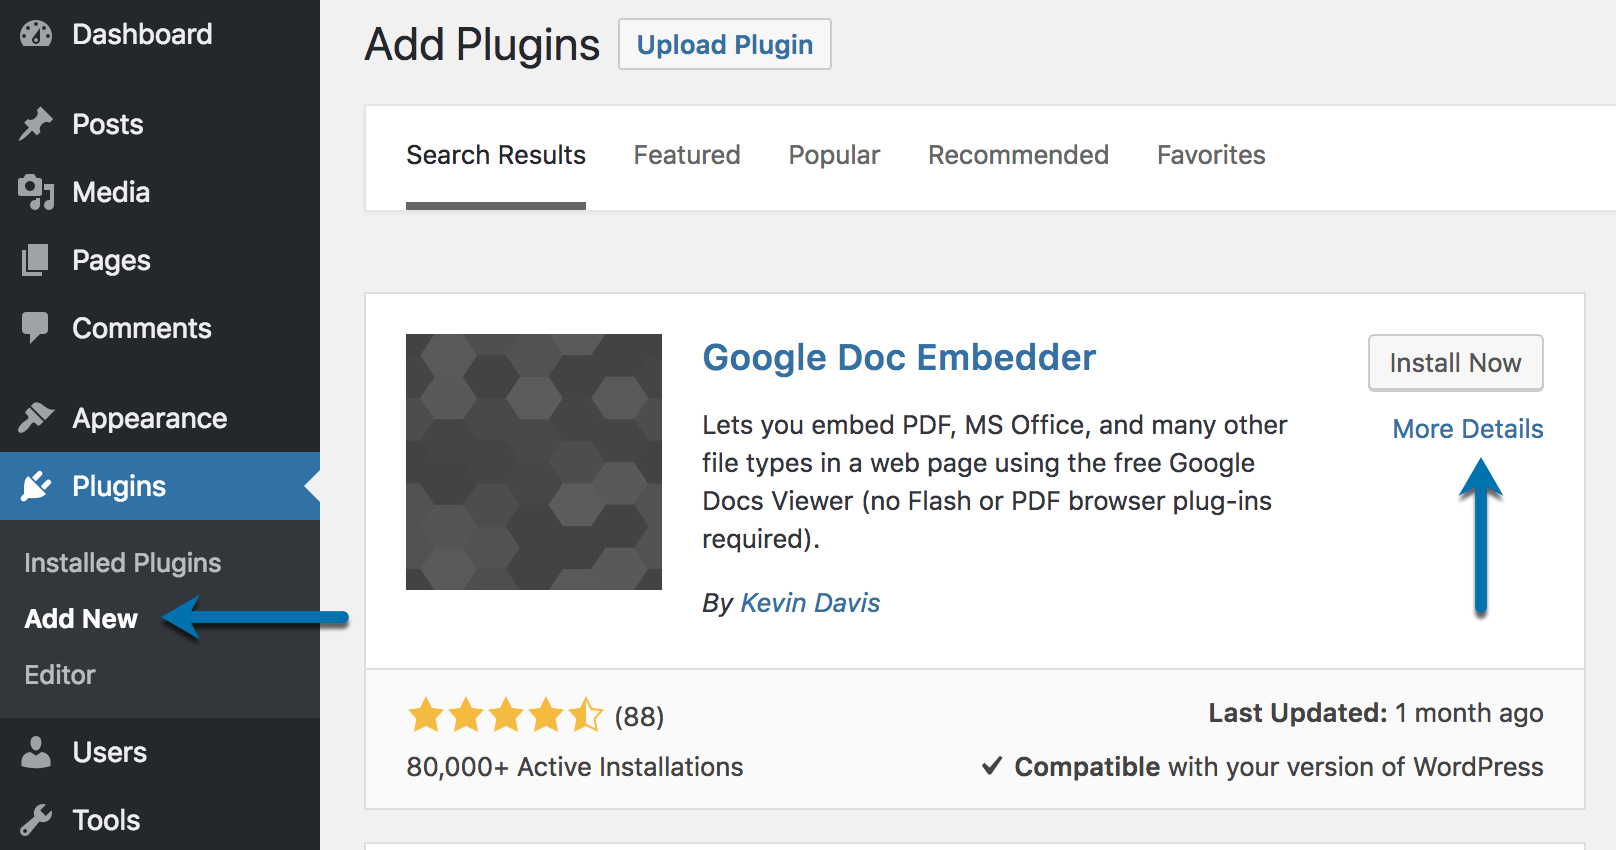 Google Doc Embedder Plugin Download Install